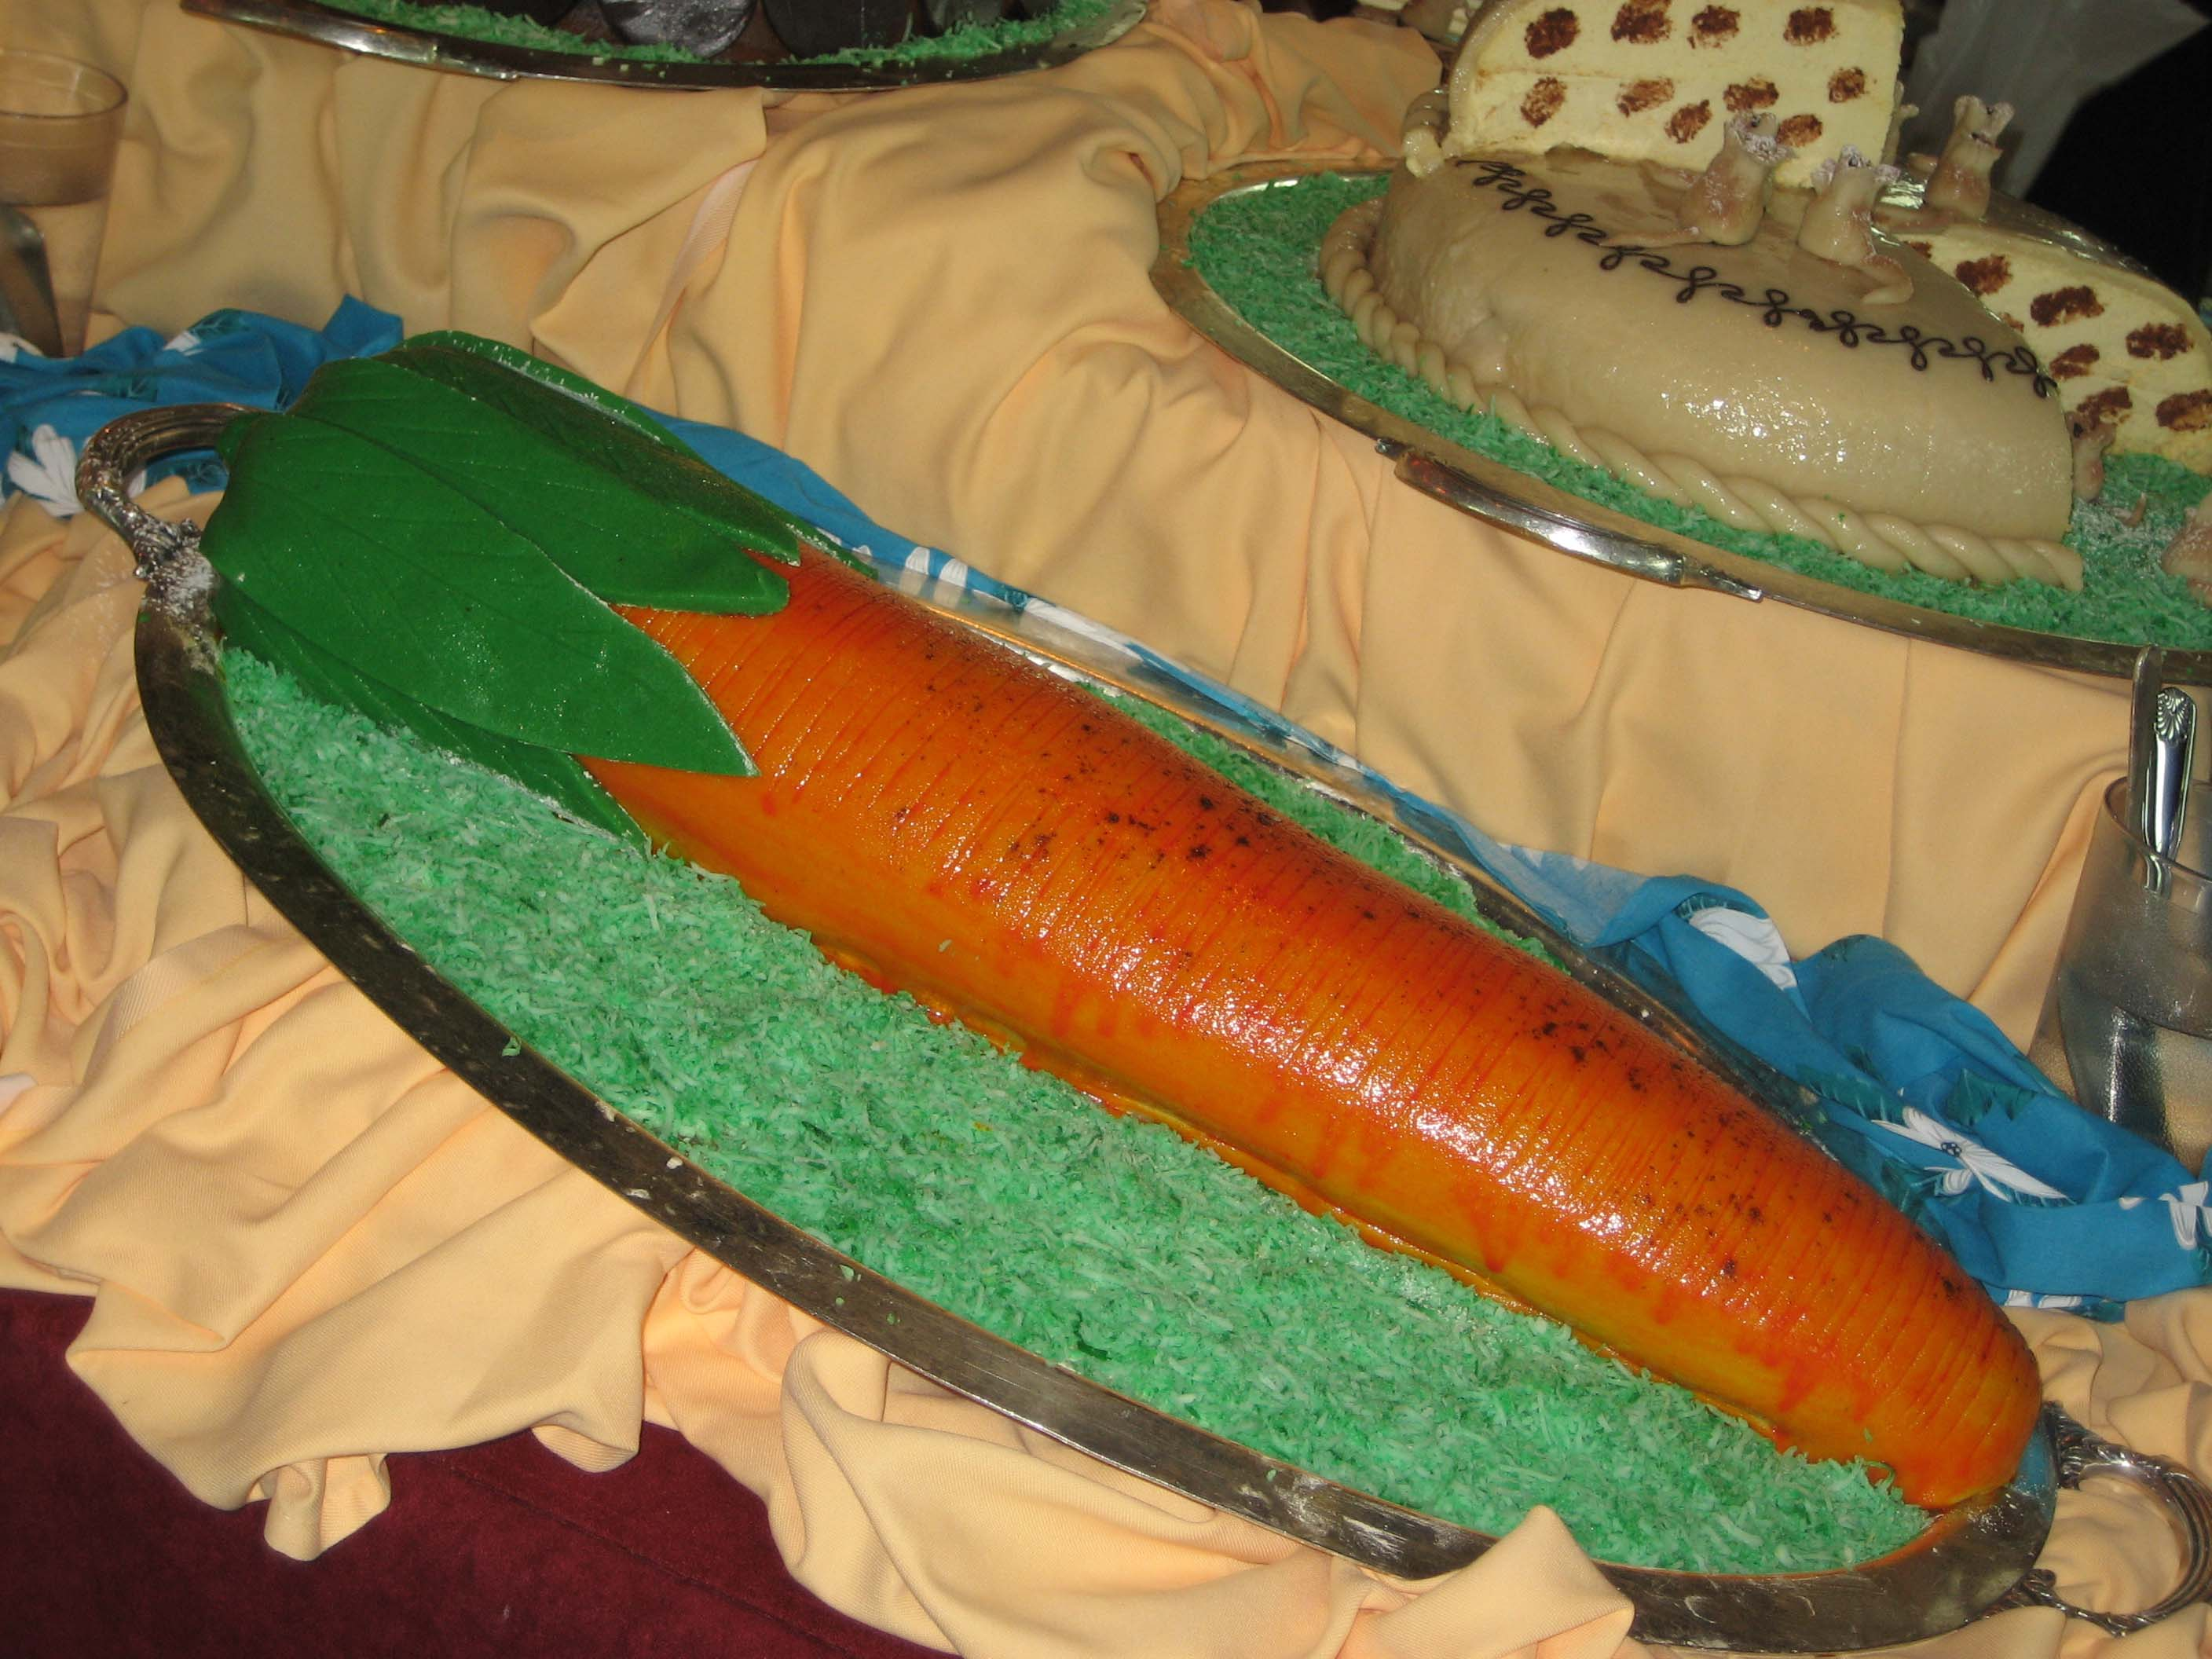 SHorizon pastry carrot